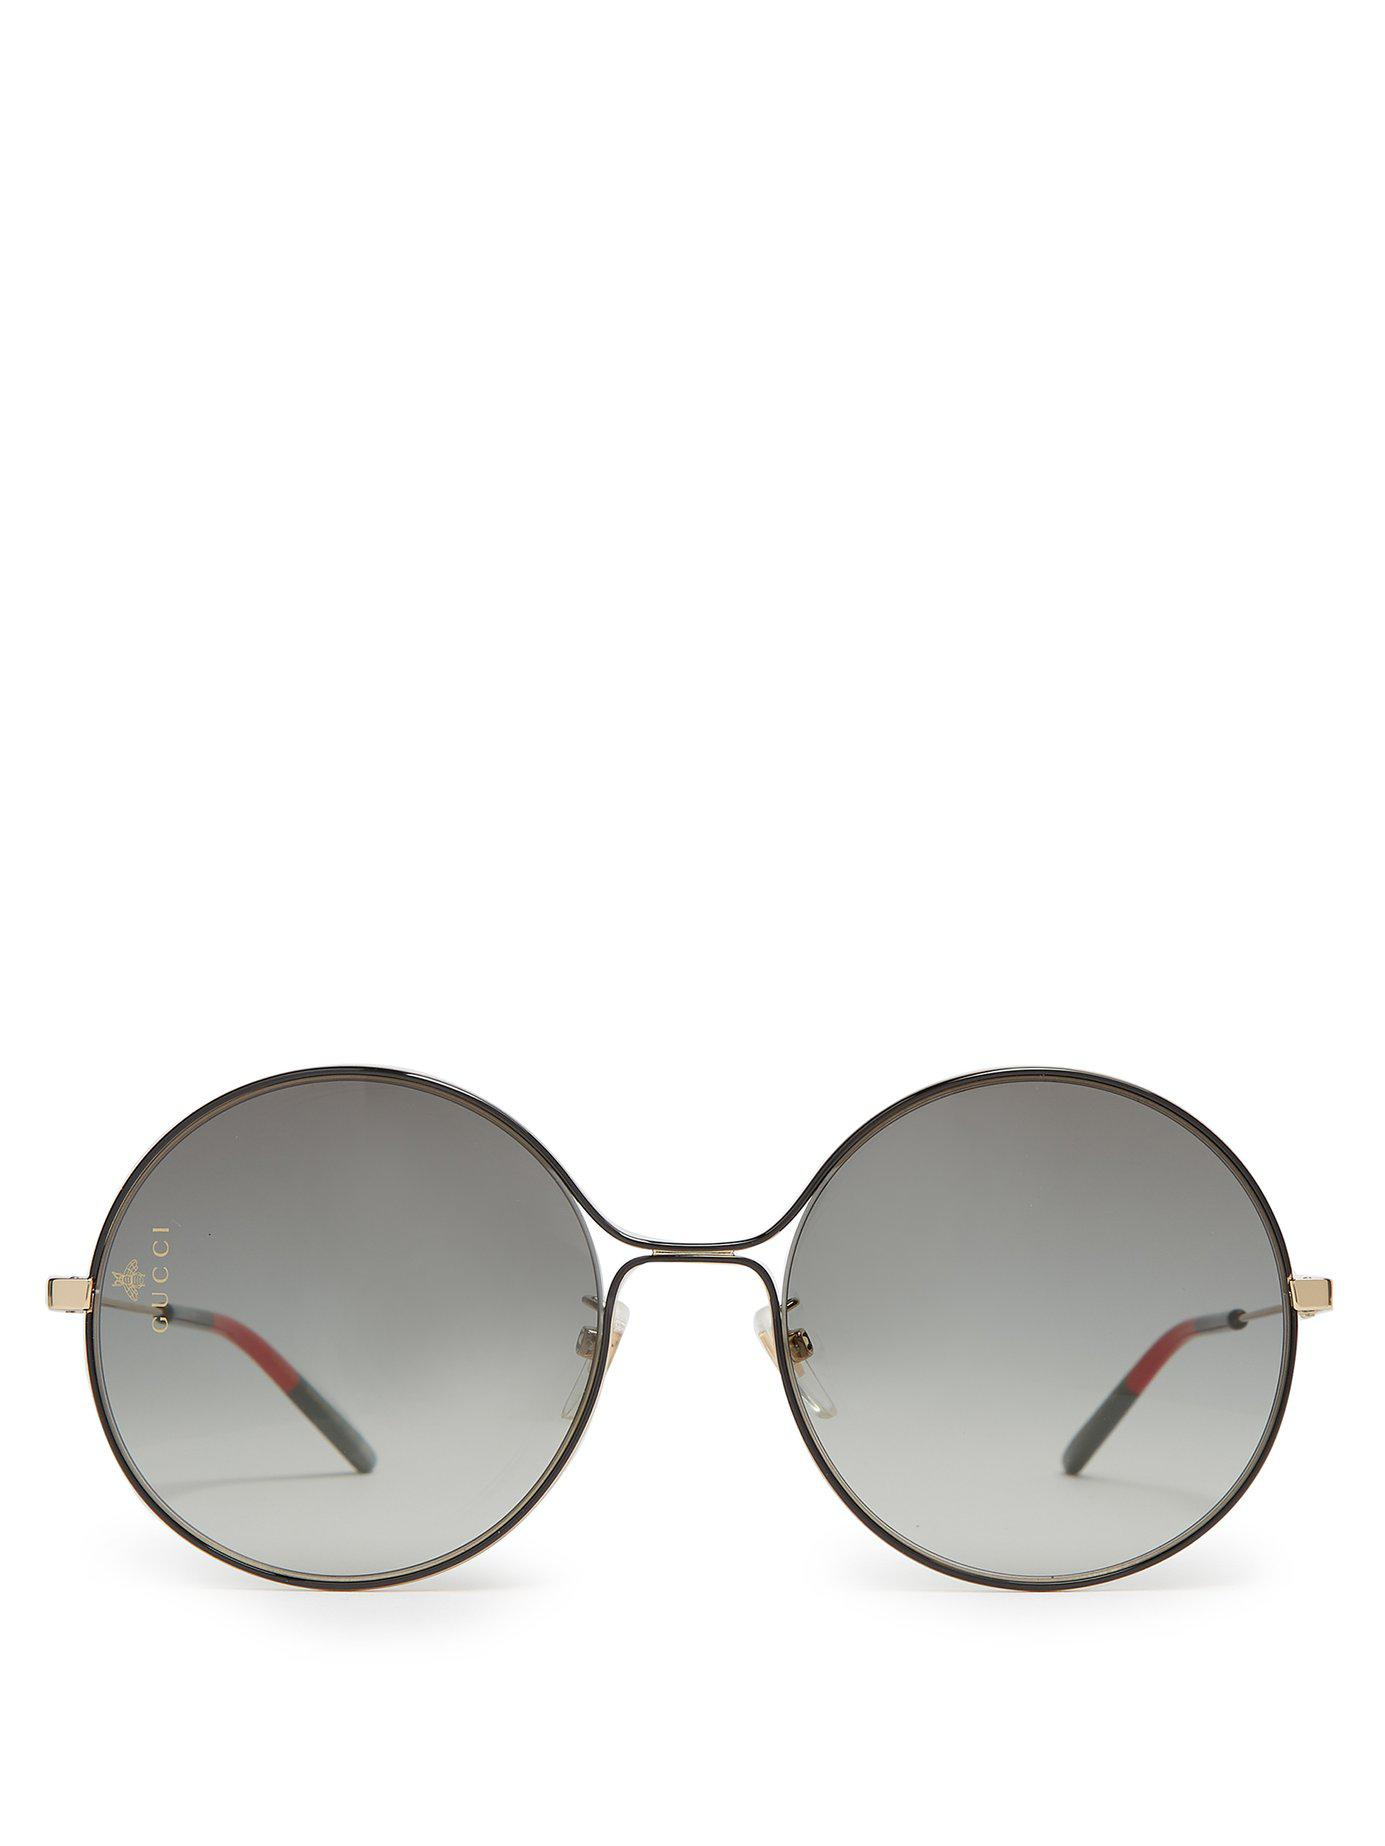 7aca128b532 Gucci - Multicolor Gg Rounded Frame Metal Sunglasses - Lyst. View fullscreen